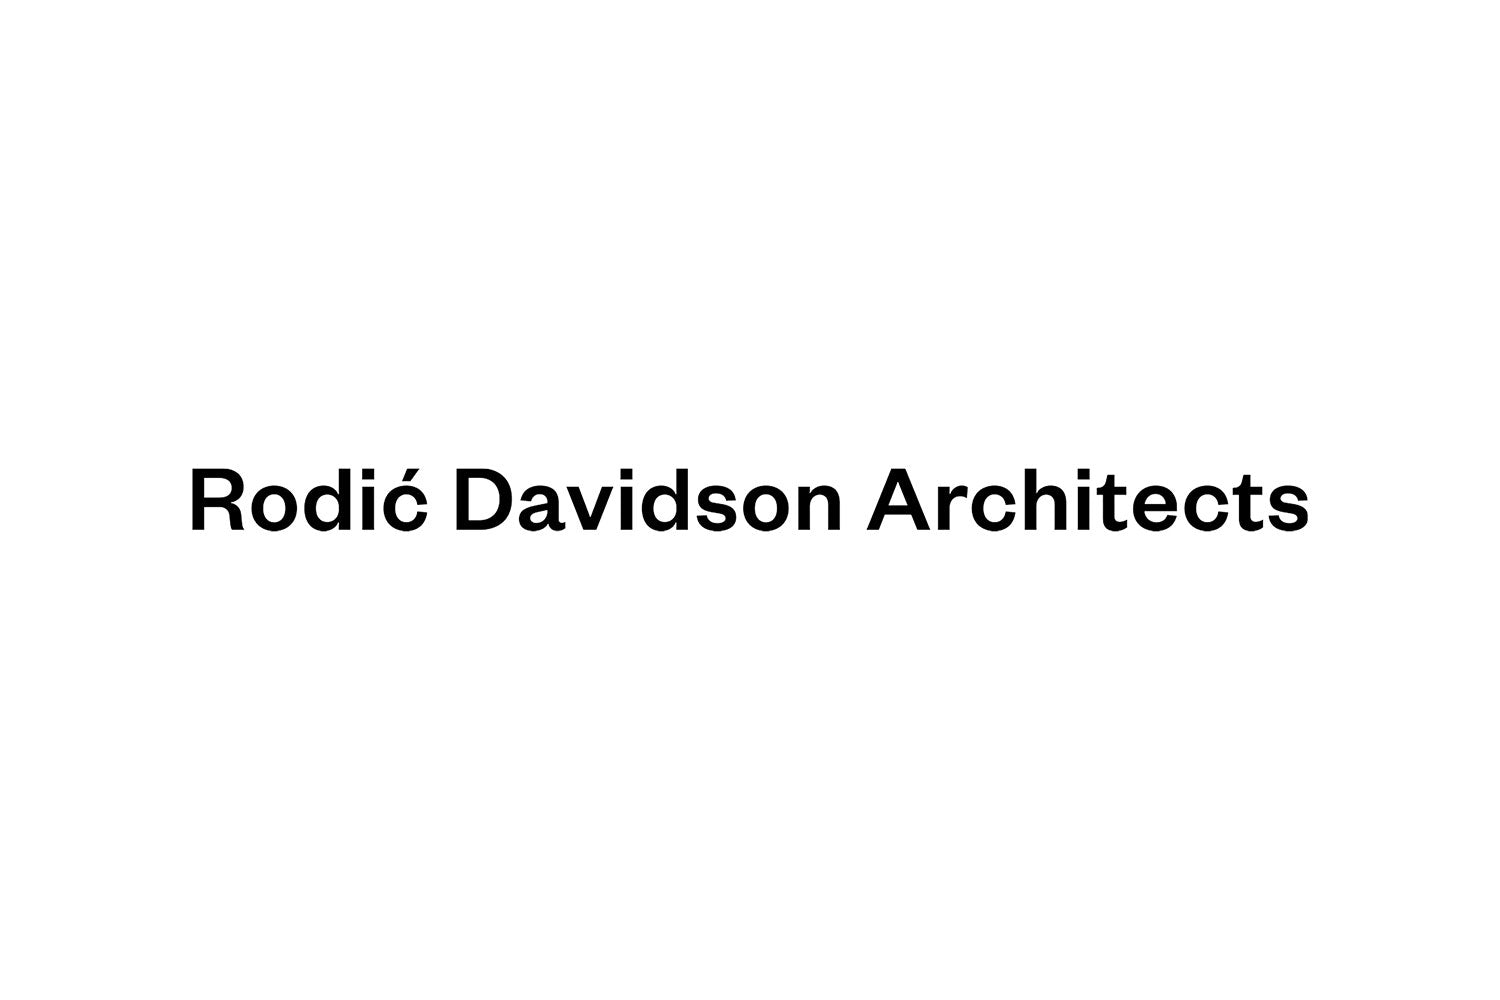 The District: Rodic Davidson Architects